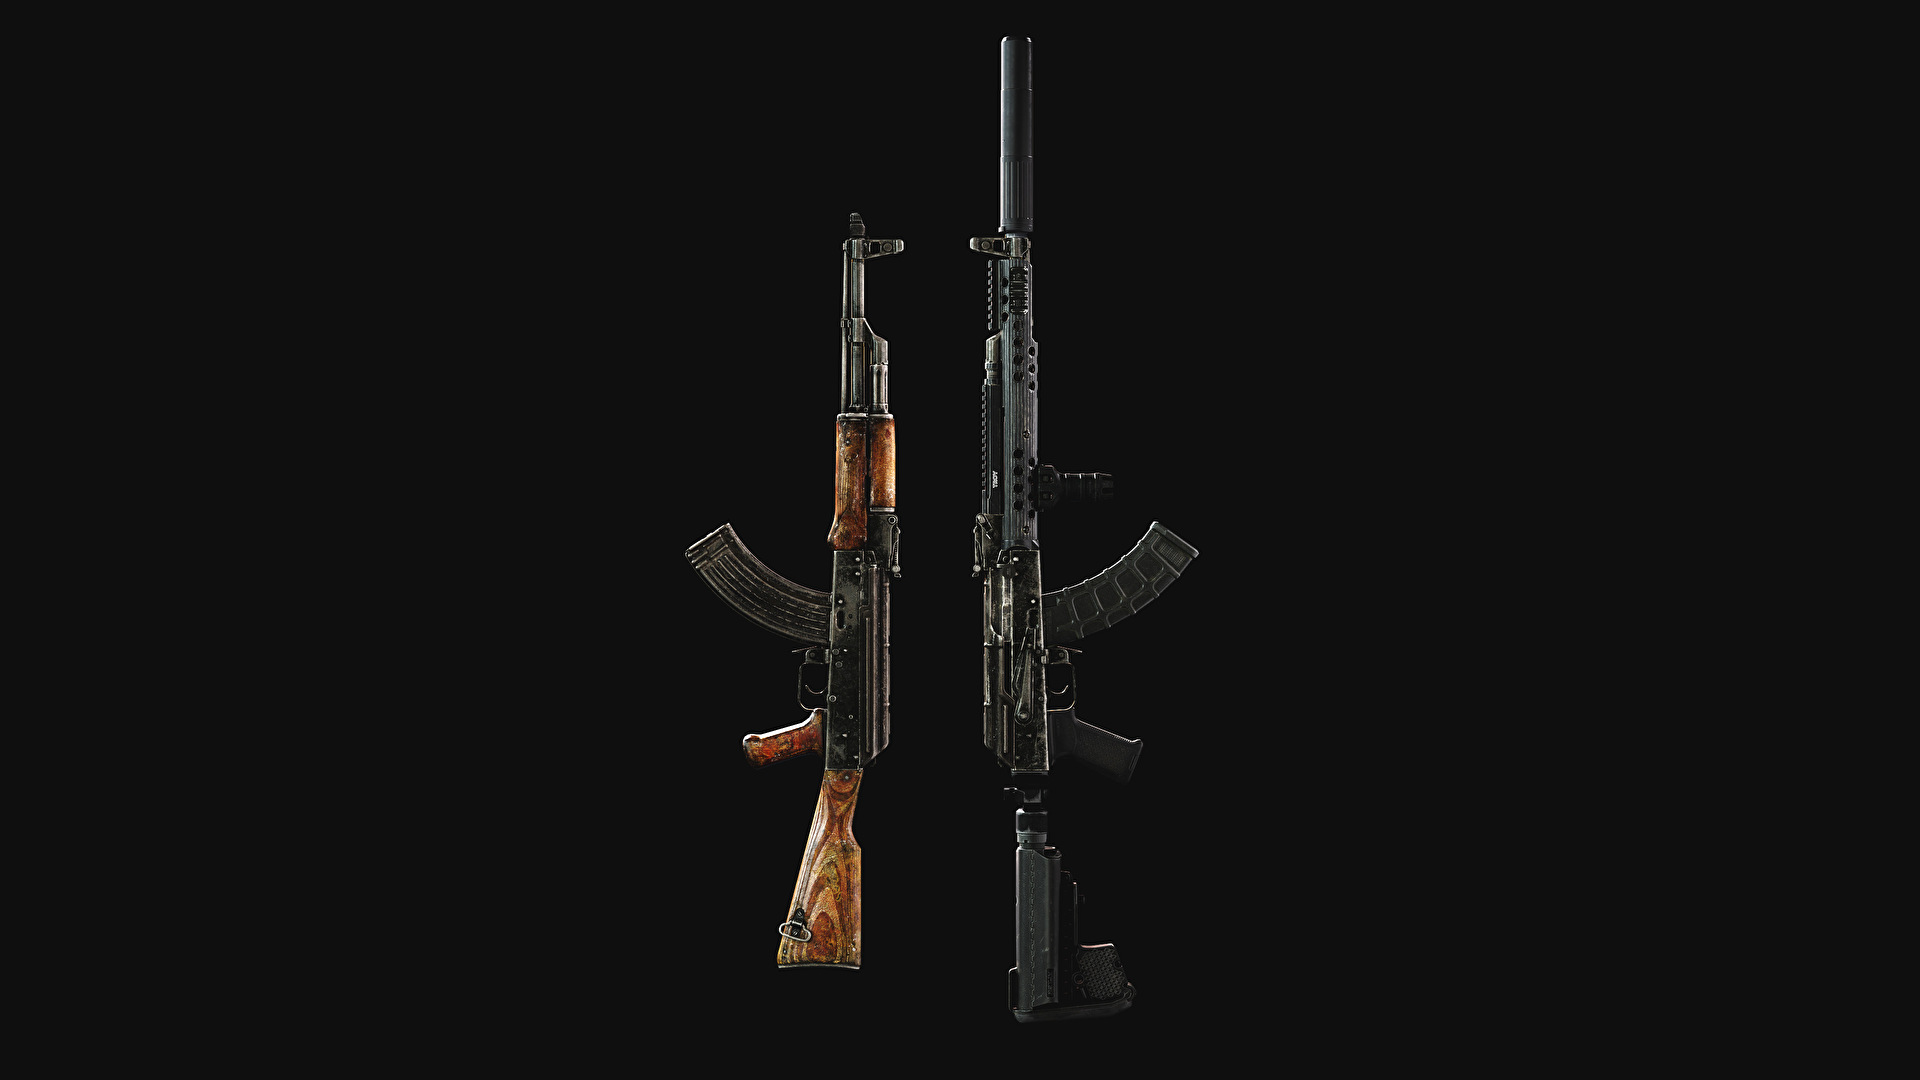 Escape From Tarkov Wallpaper 4k: [OC] 4k Wallpaper: Something Old, Something New